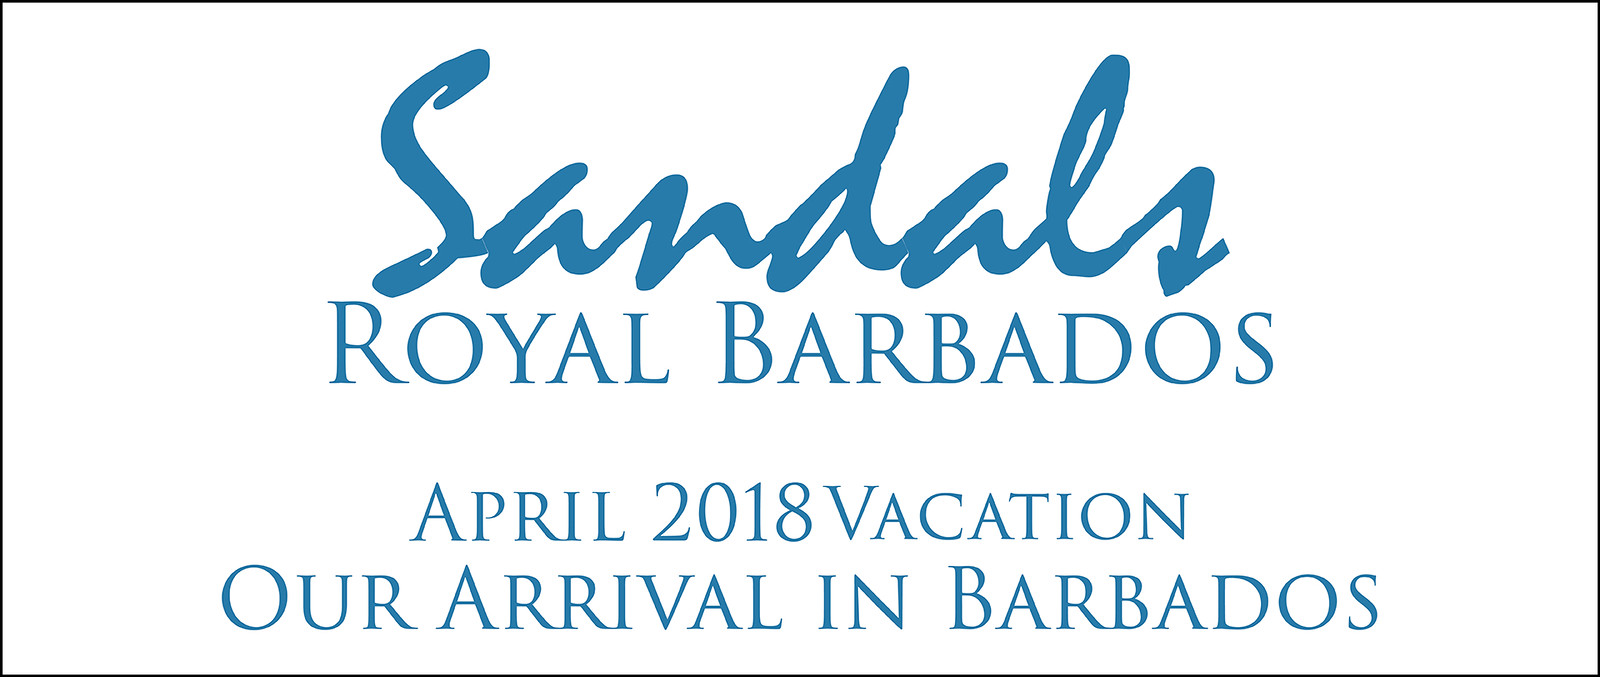 Our Arrival Video at Sandals Royal Barbados in April 2018